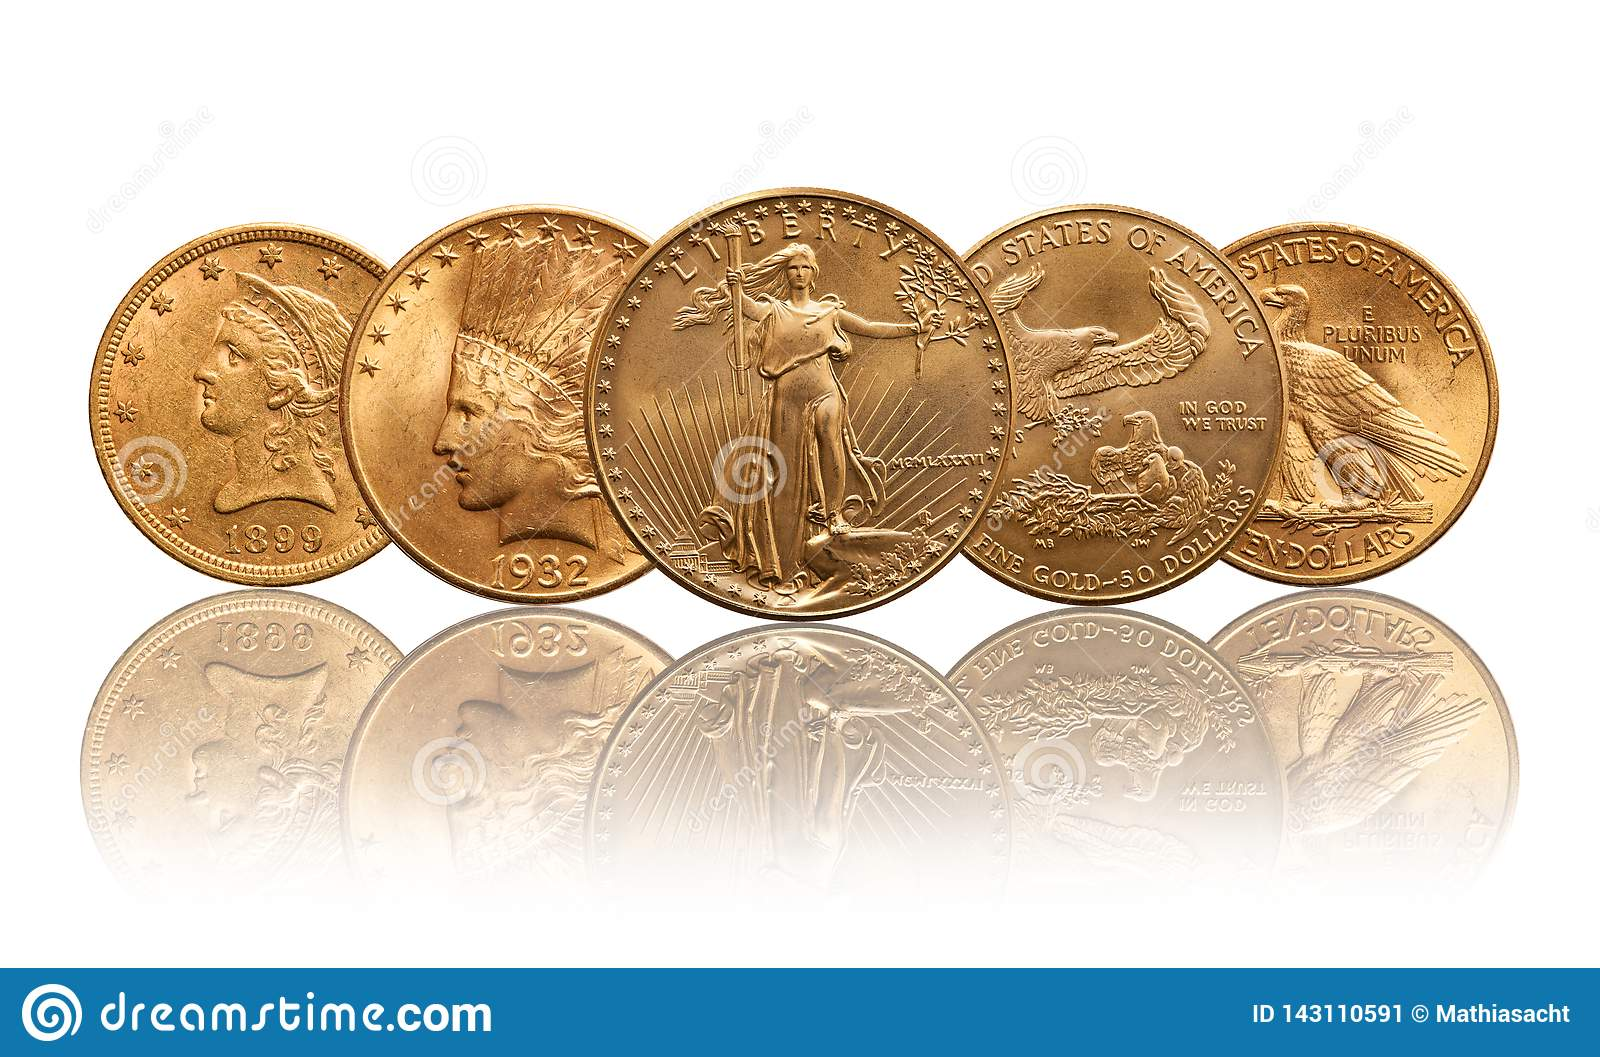 United states gold coins liberty, indian head, eagle